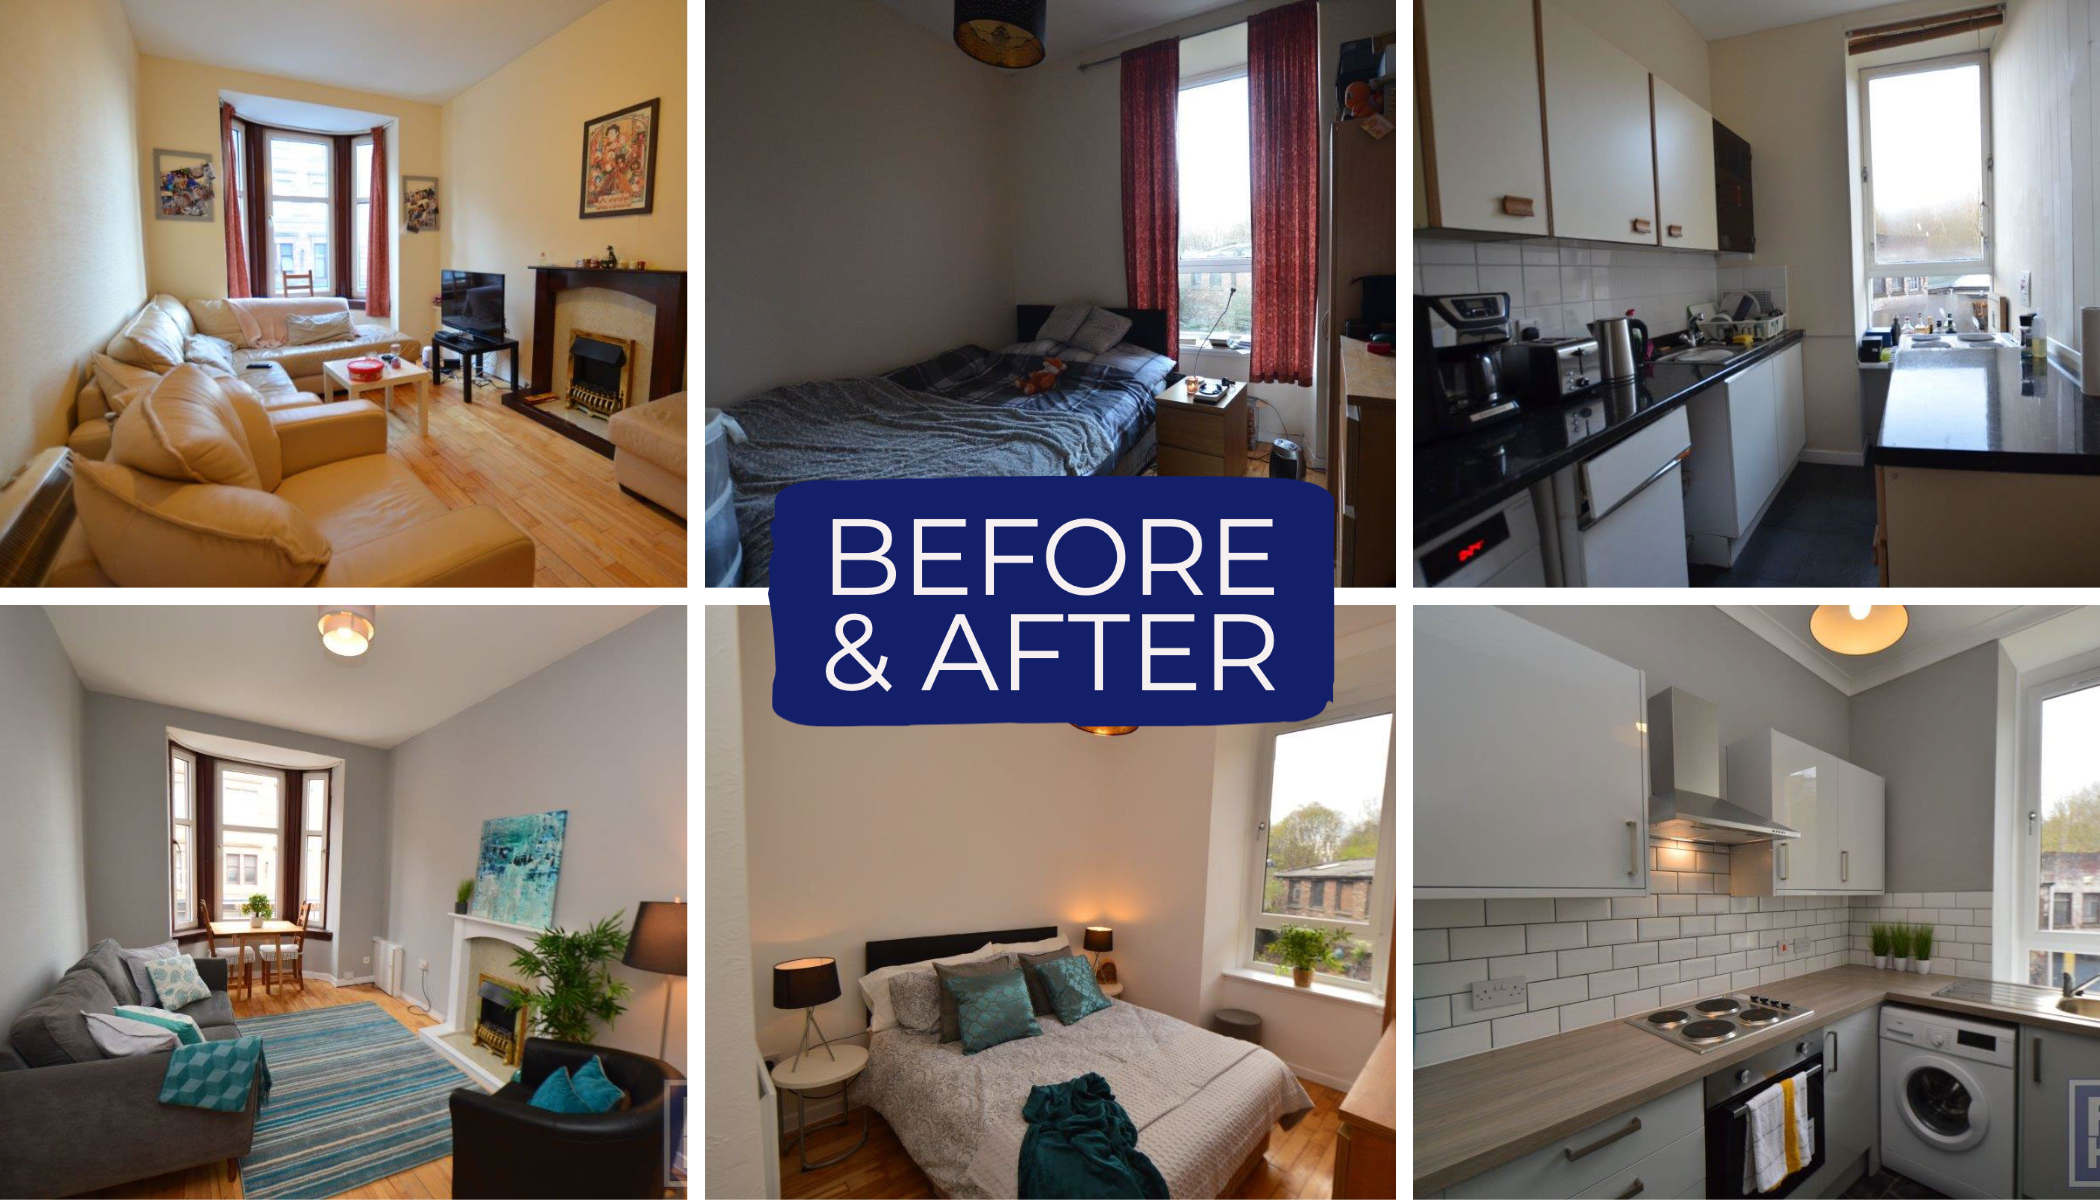 Property Investment - before and after